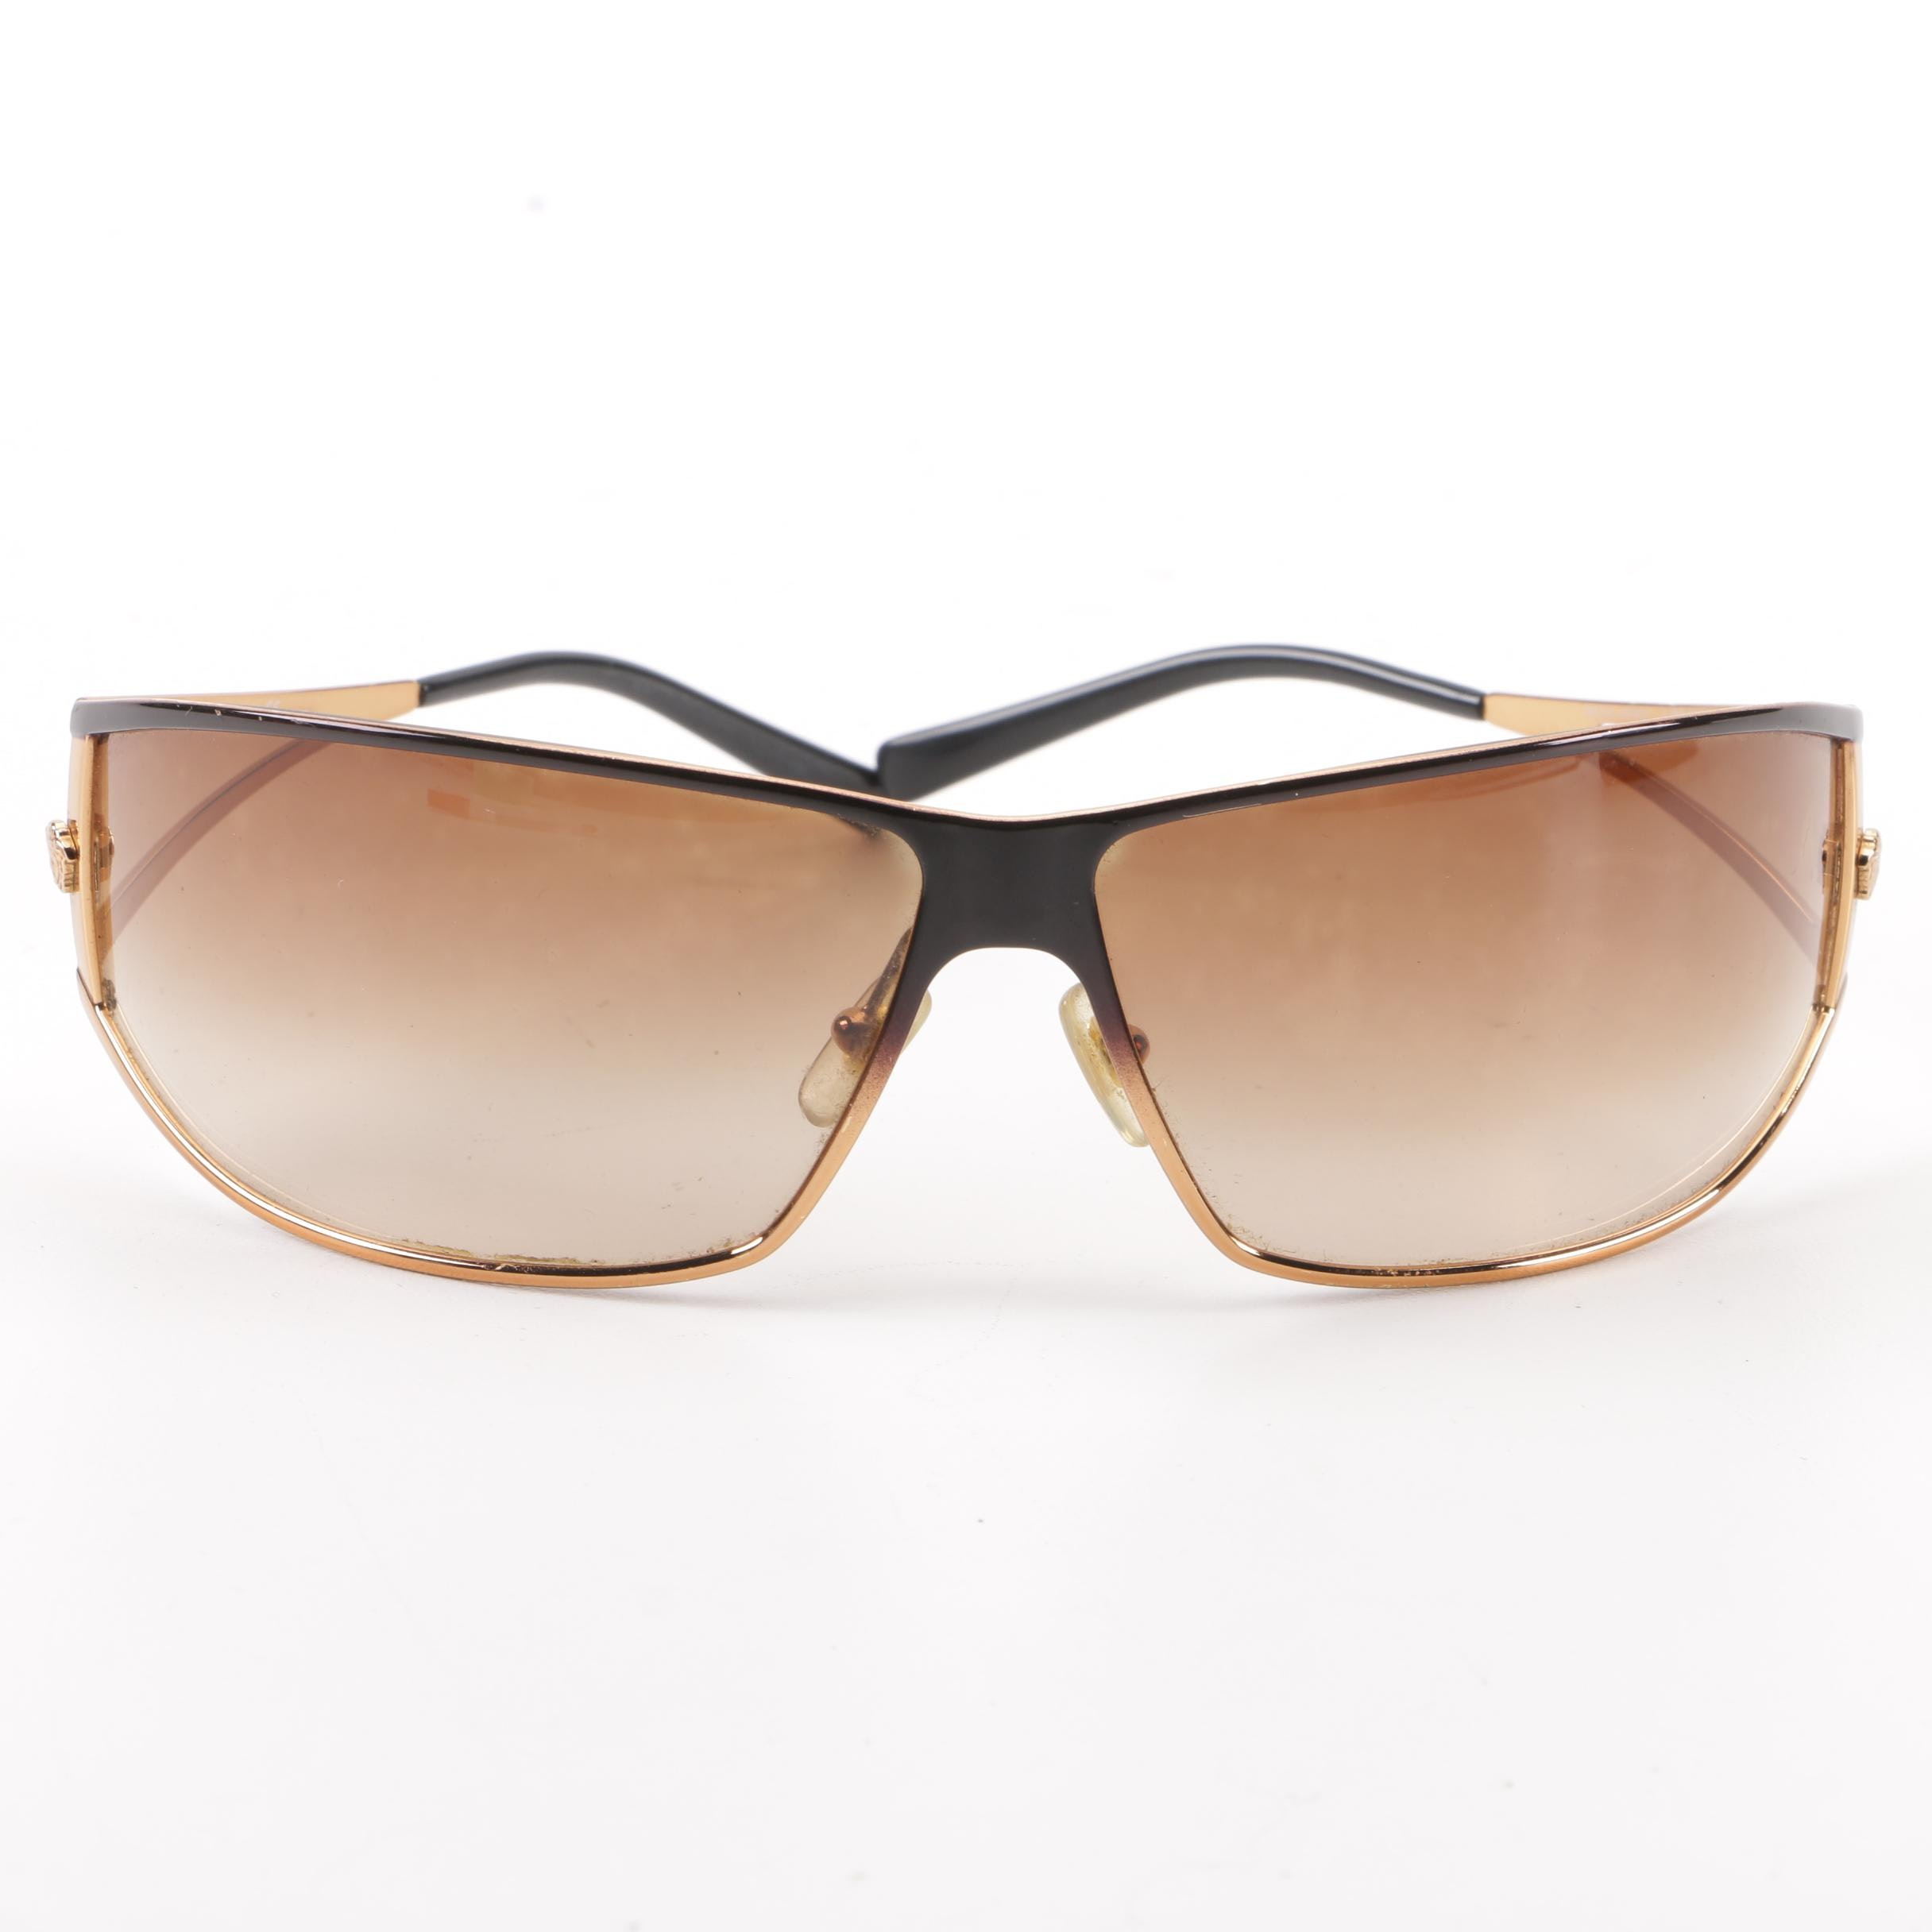 Versace 2040 Wrap Sunglasses with Case